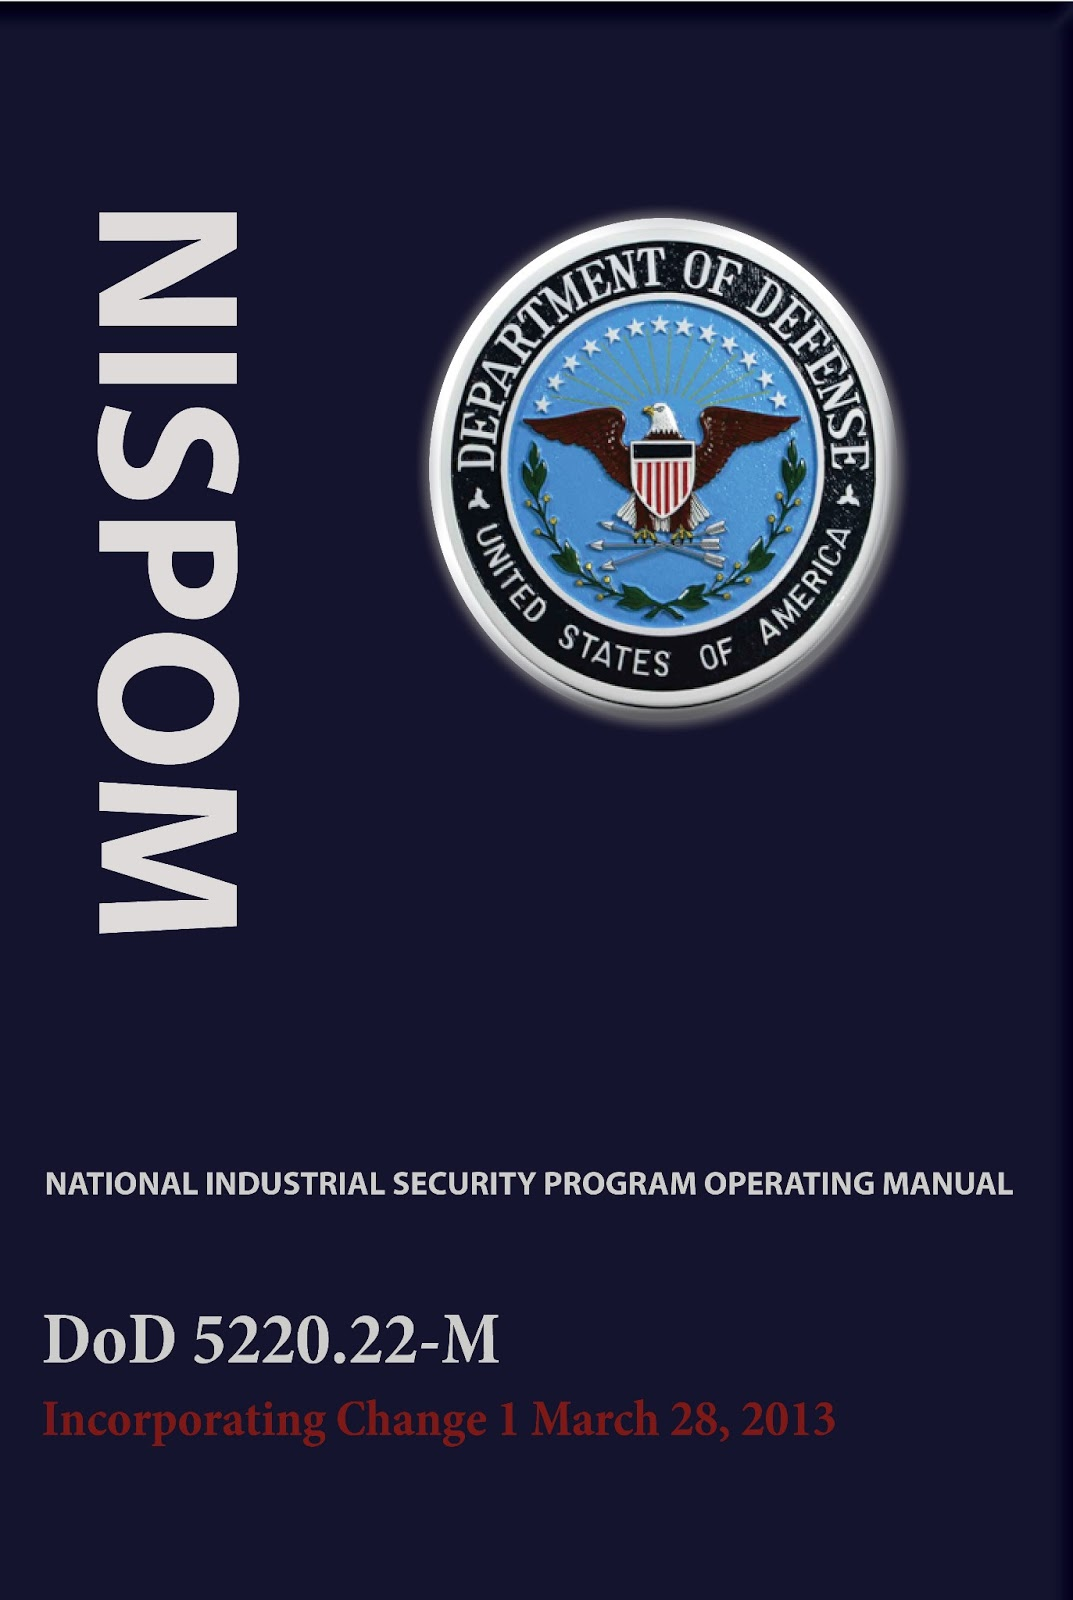 National Industrial Security Program Operating Manual (NISPOM) - AcqNotes